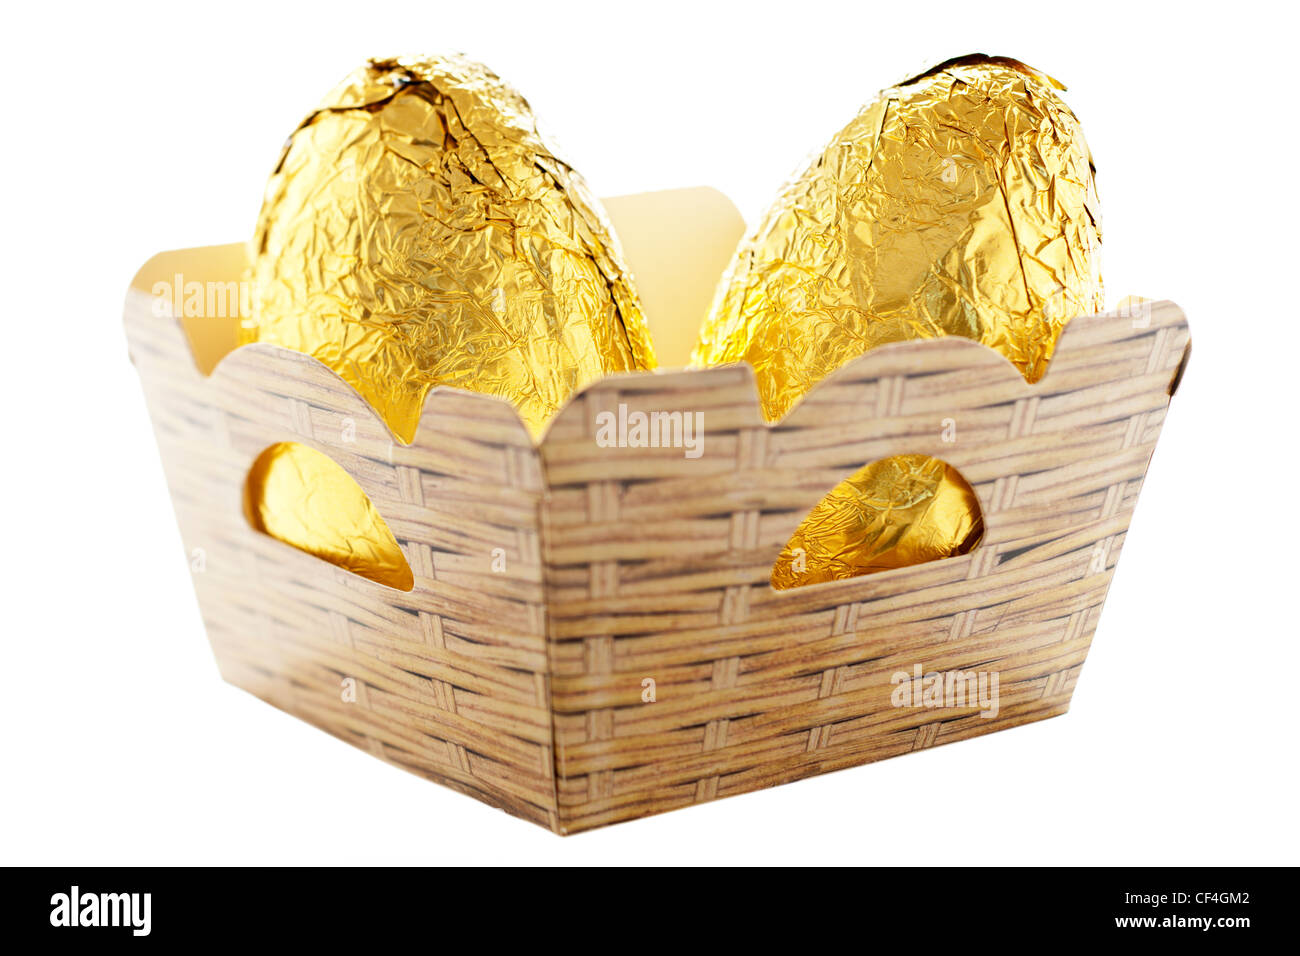 Two gold foil chocolate Easer Eggs in a cardboard punnet - Stock Image